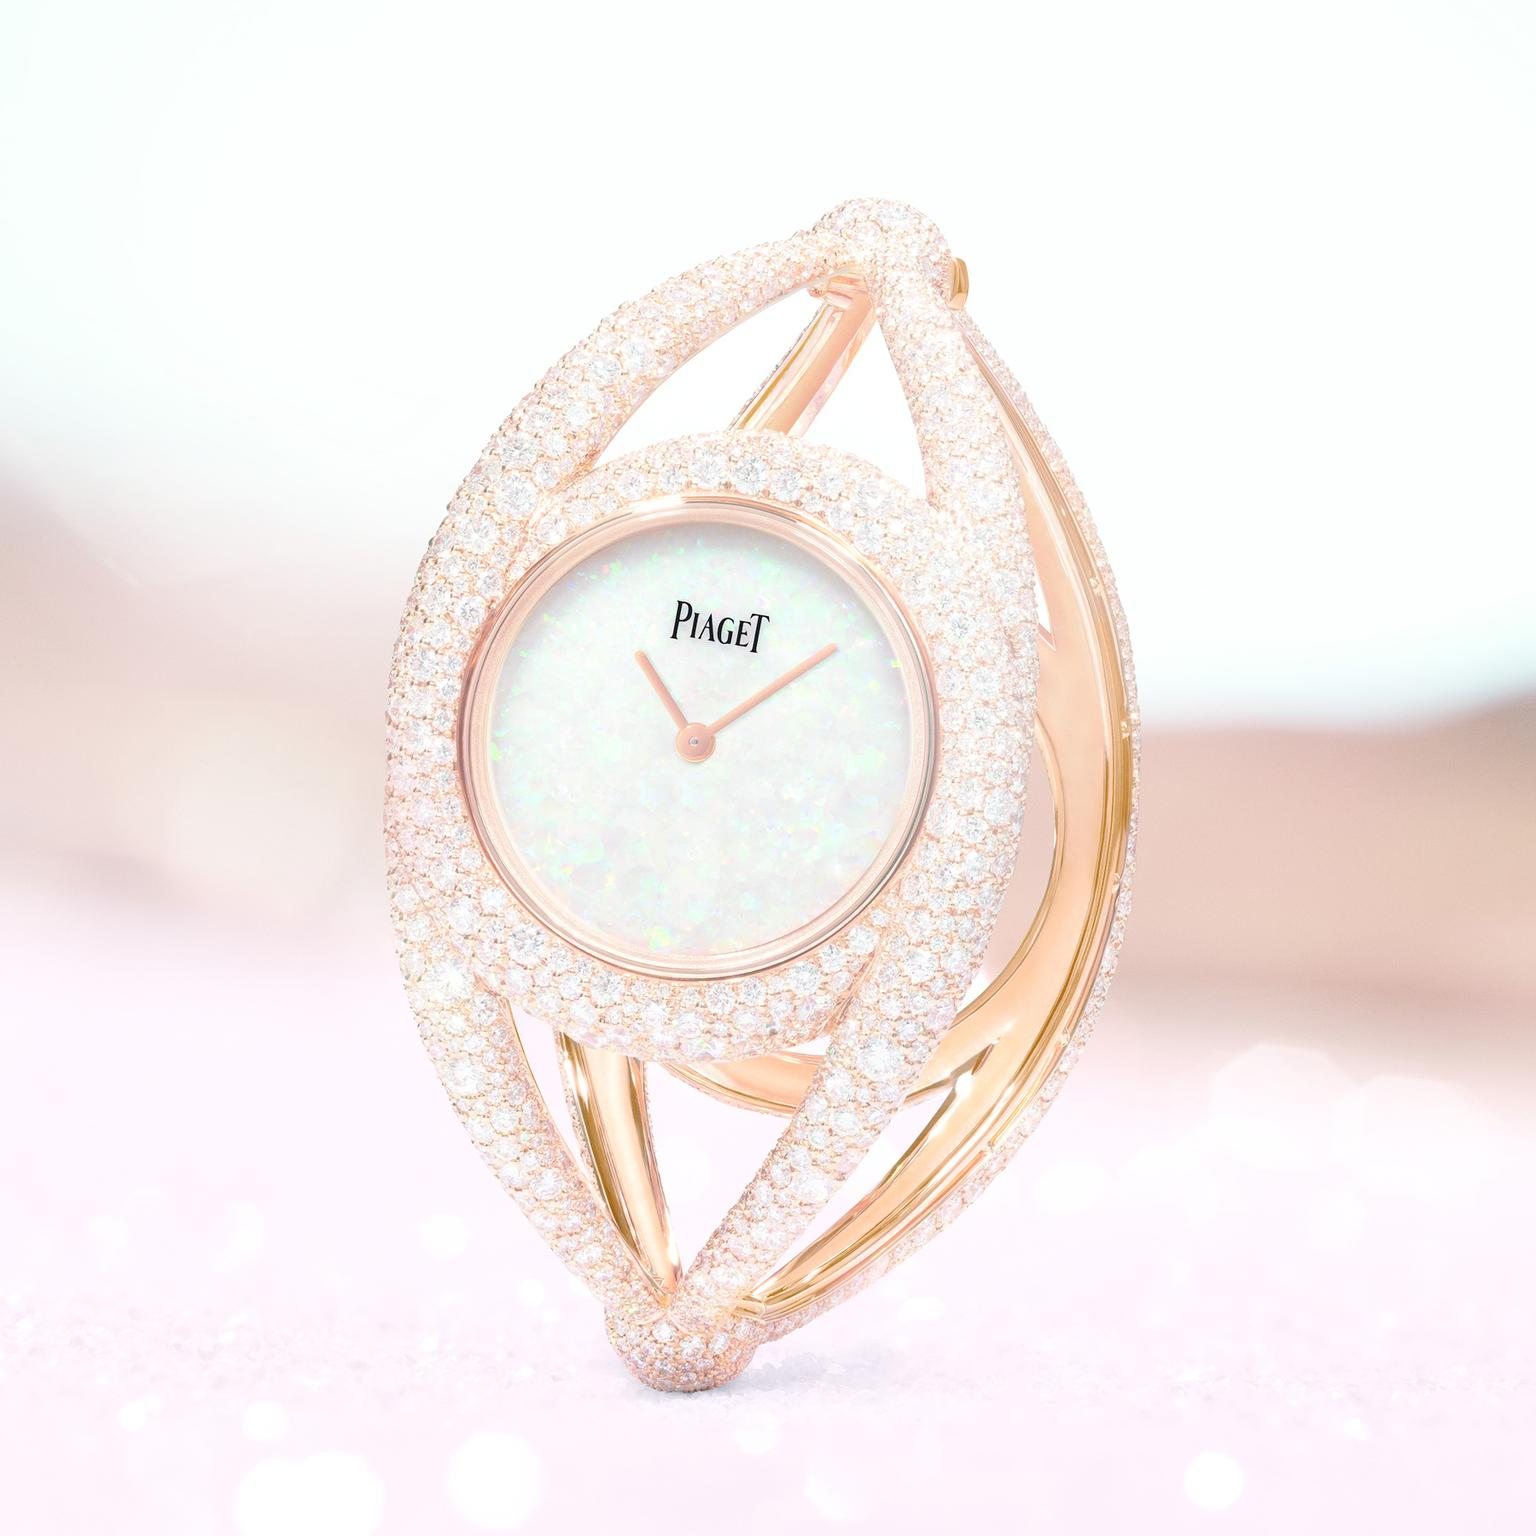 Piaget Iridescent Reflections jewellery watch